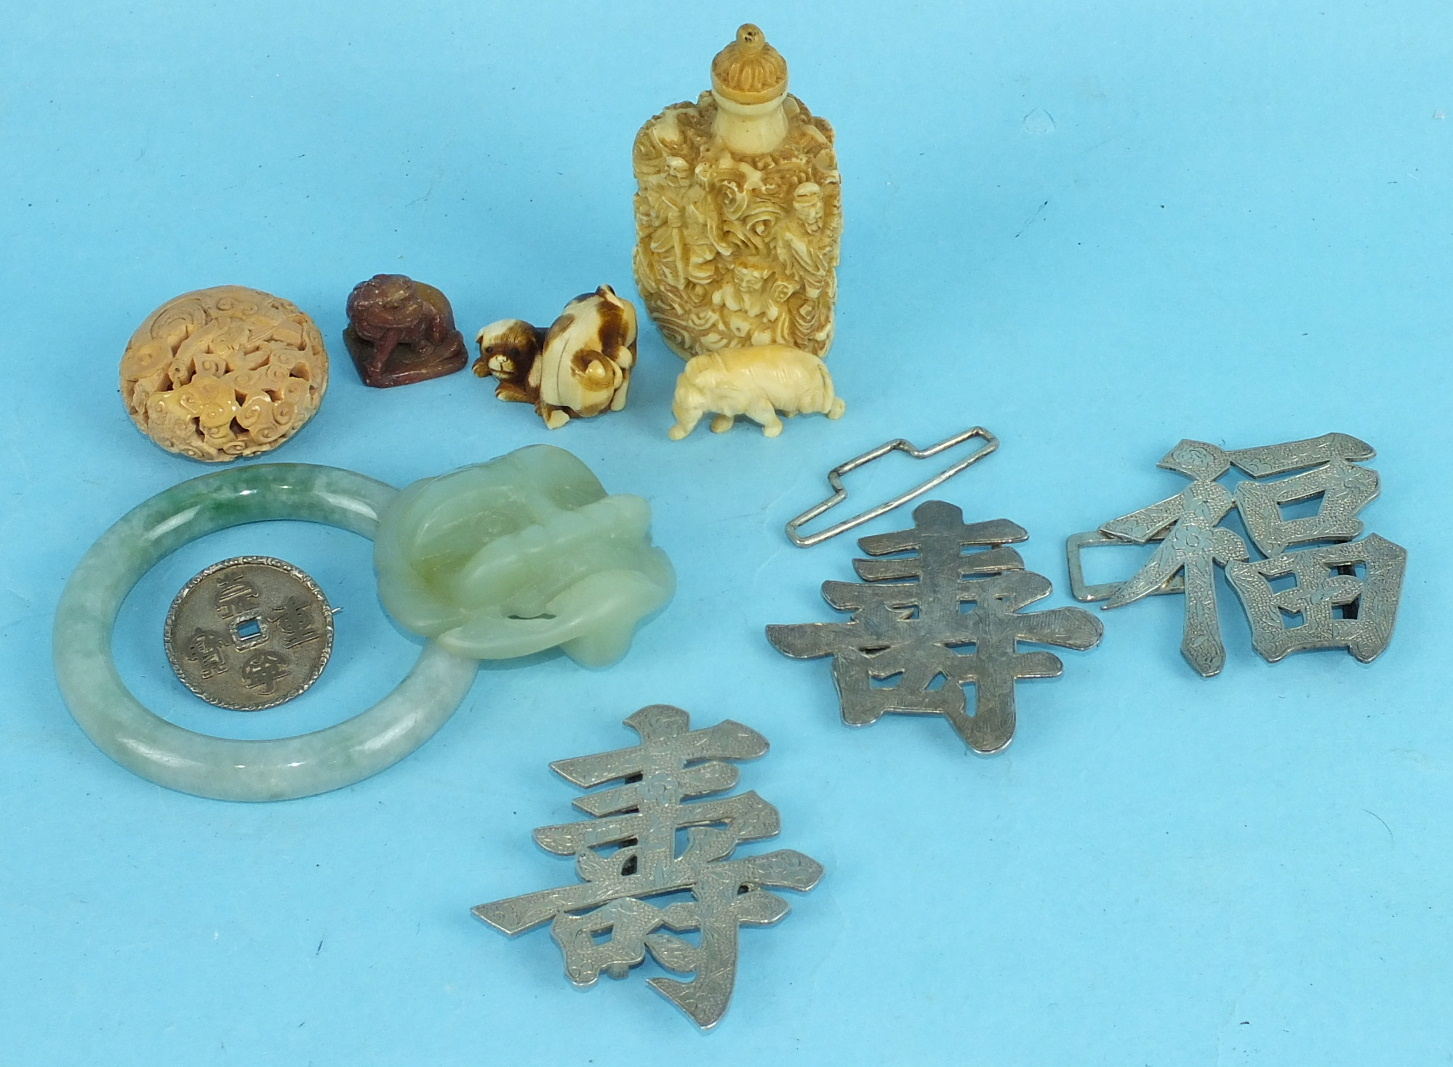 A collection of Oriental works of art, including a Chinese jadite bangle, an animal mask buckle, two